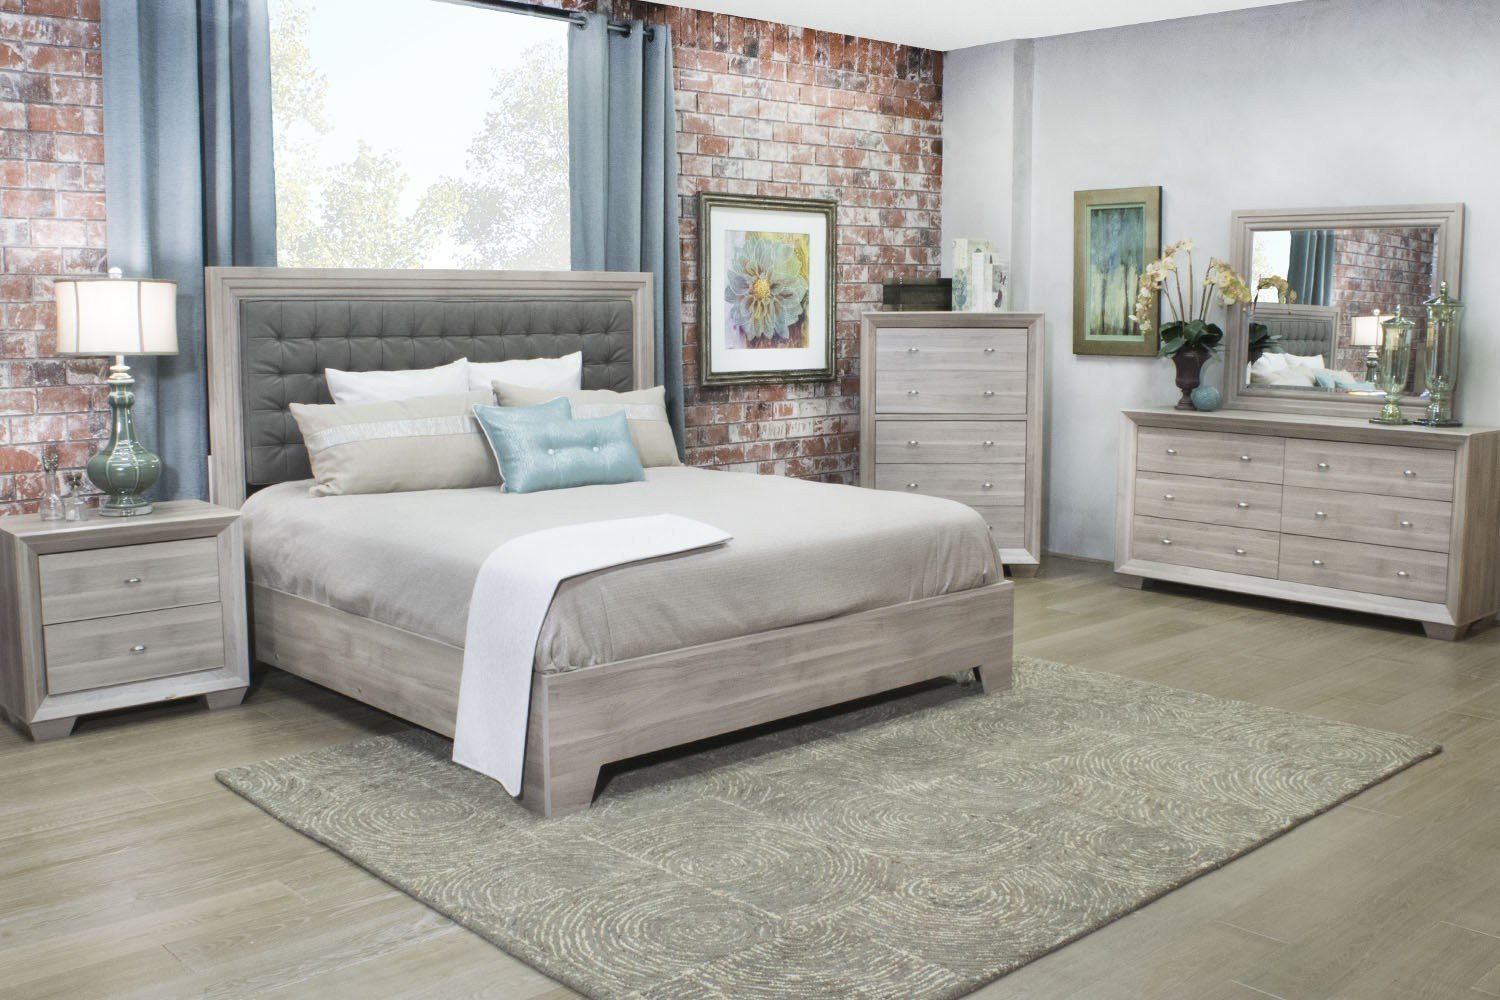 Best Arrow Furniture Bedroom Sets Sam S Club Bedroom Furniture Bedroom Furniture Mor Furniture For With Pictures